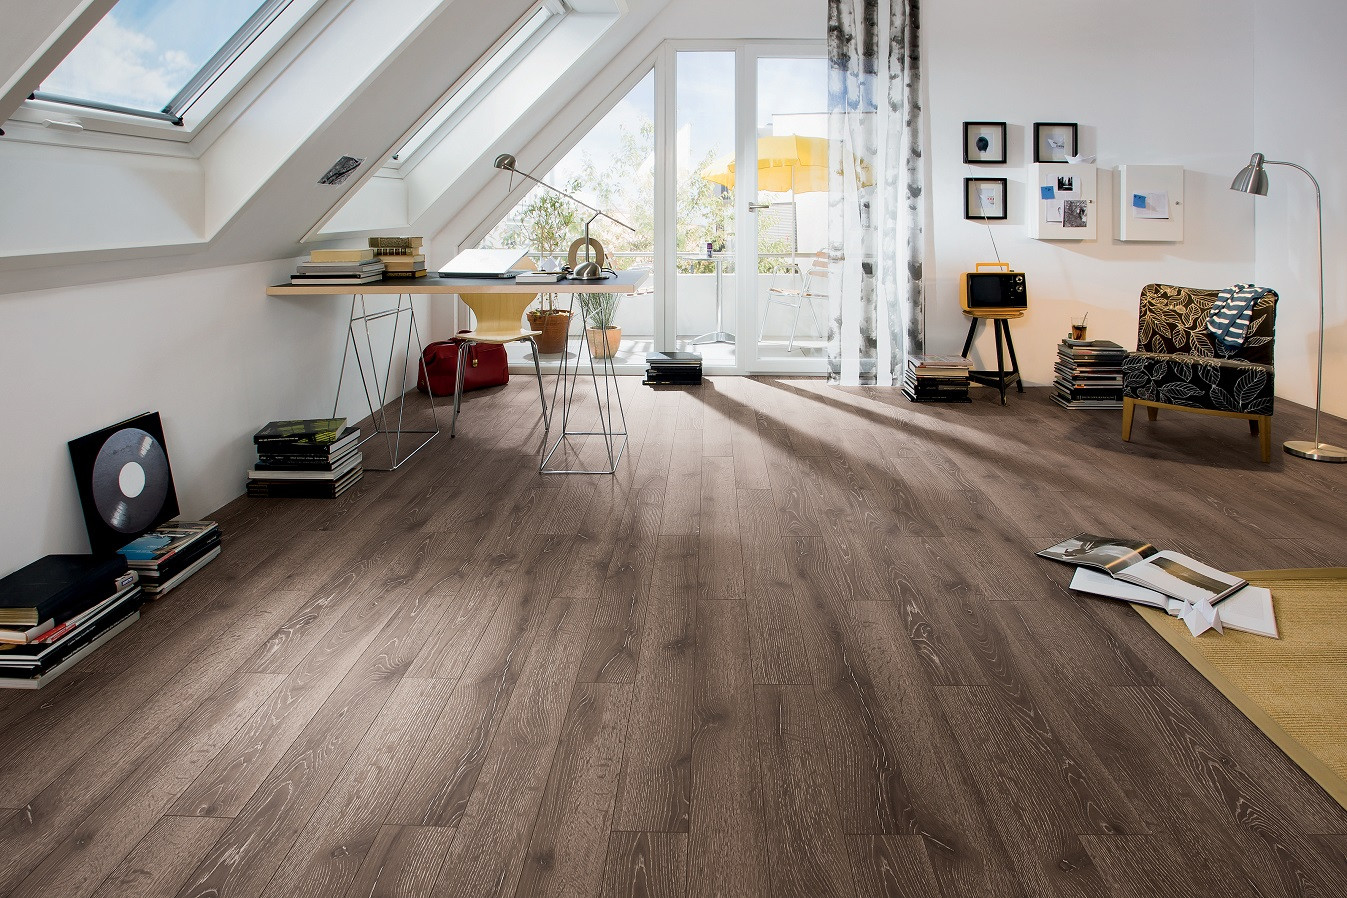 Cost Of Bamboo Flooring Compared to Hardwood Of Ca Laminate Flooring California Wood Floor Boards San Jose Los within Ca Best Place to Buy Hardwood Flooring